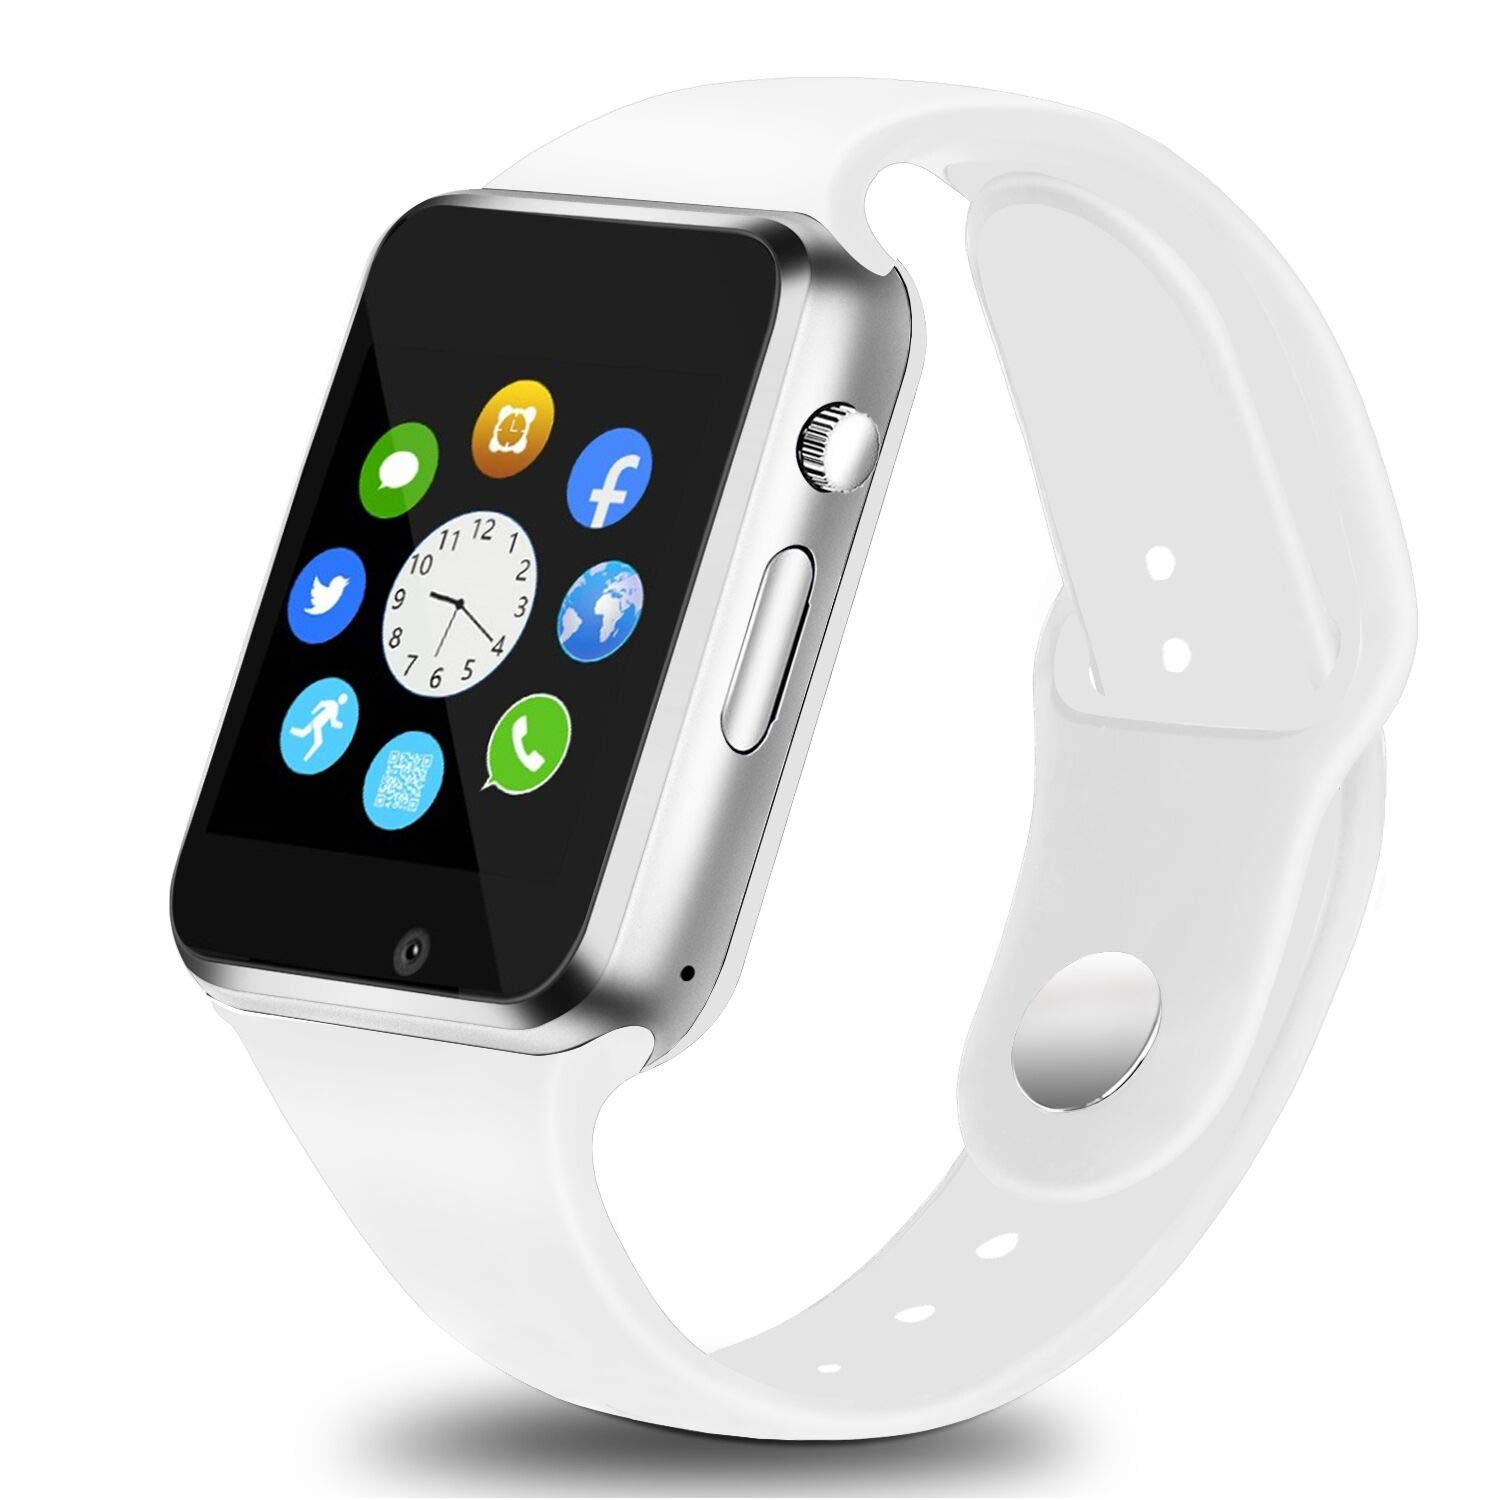 Aeifond Smart Watch Bluetooth Smartwatch Touch Screen Wrist Watch Sports Fitness Tracker with Camera SIM SD Card Slot Pedometer Compatible iPhone iOS Samsung LG Android Men Women Kids (White)